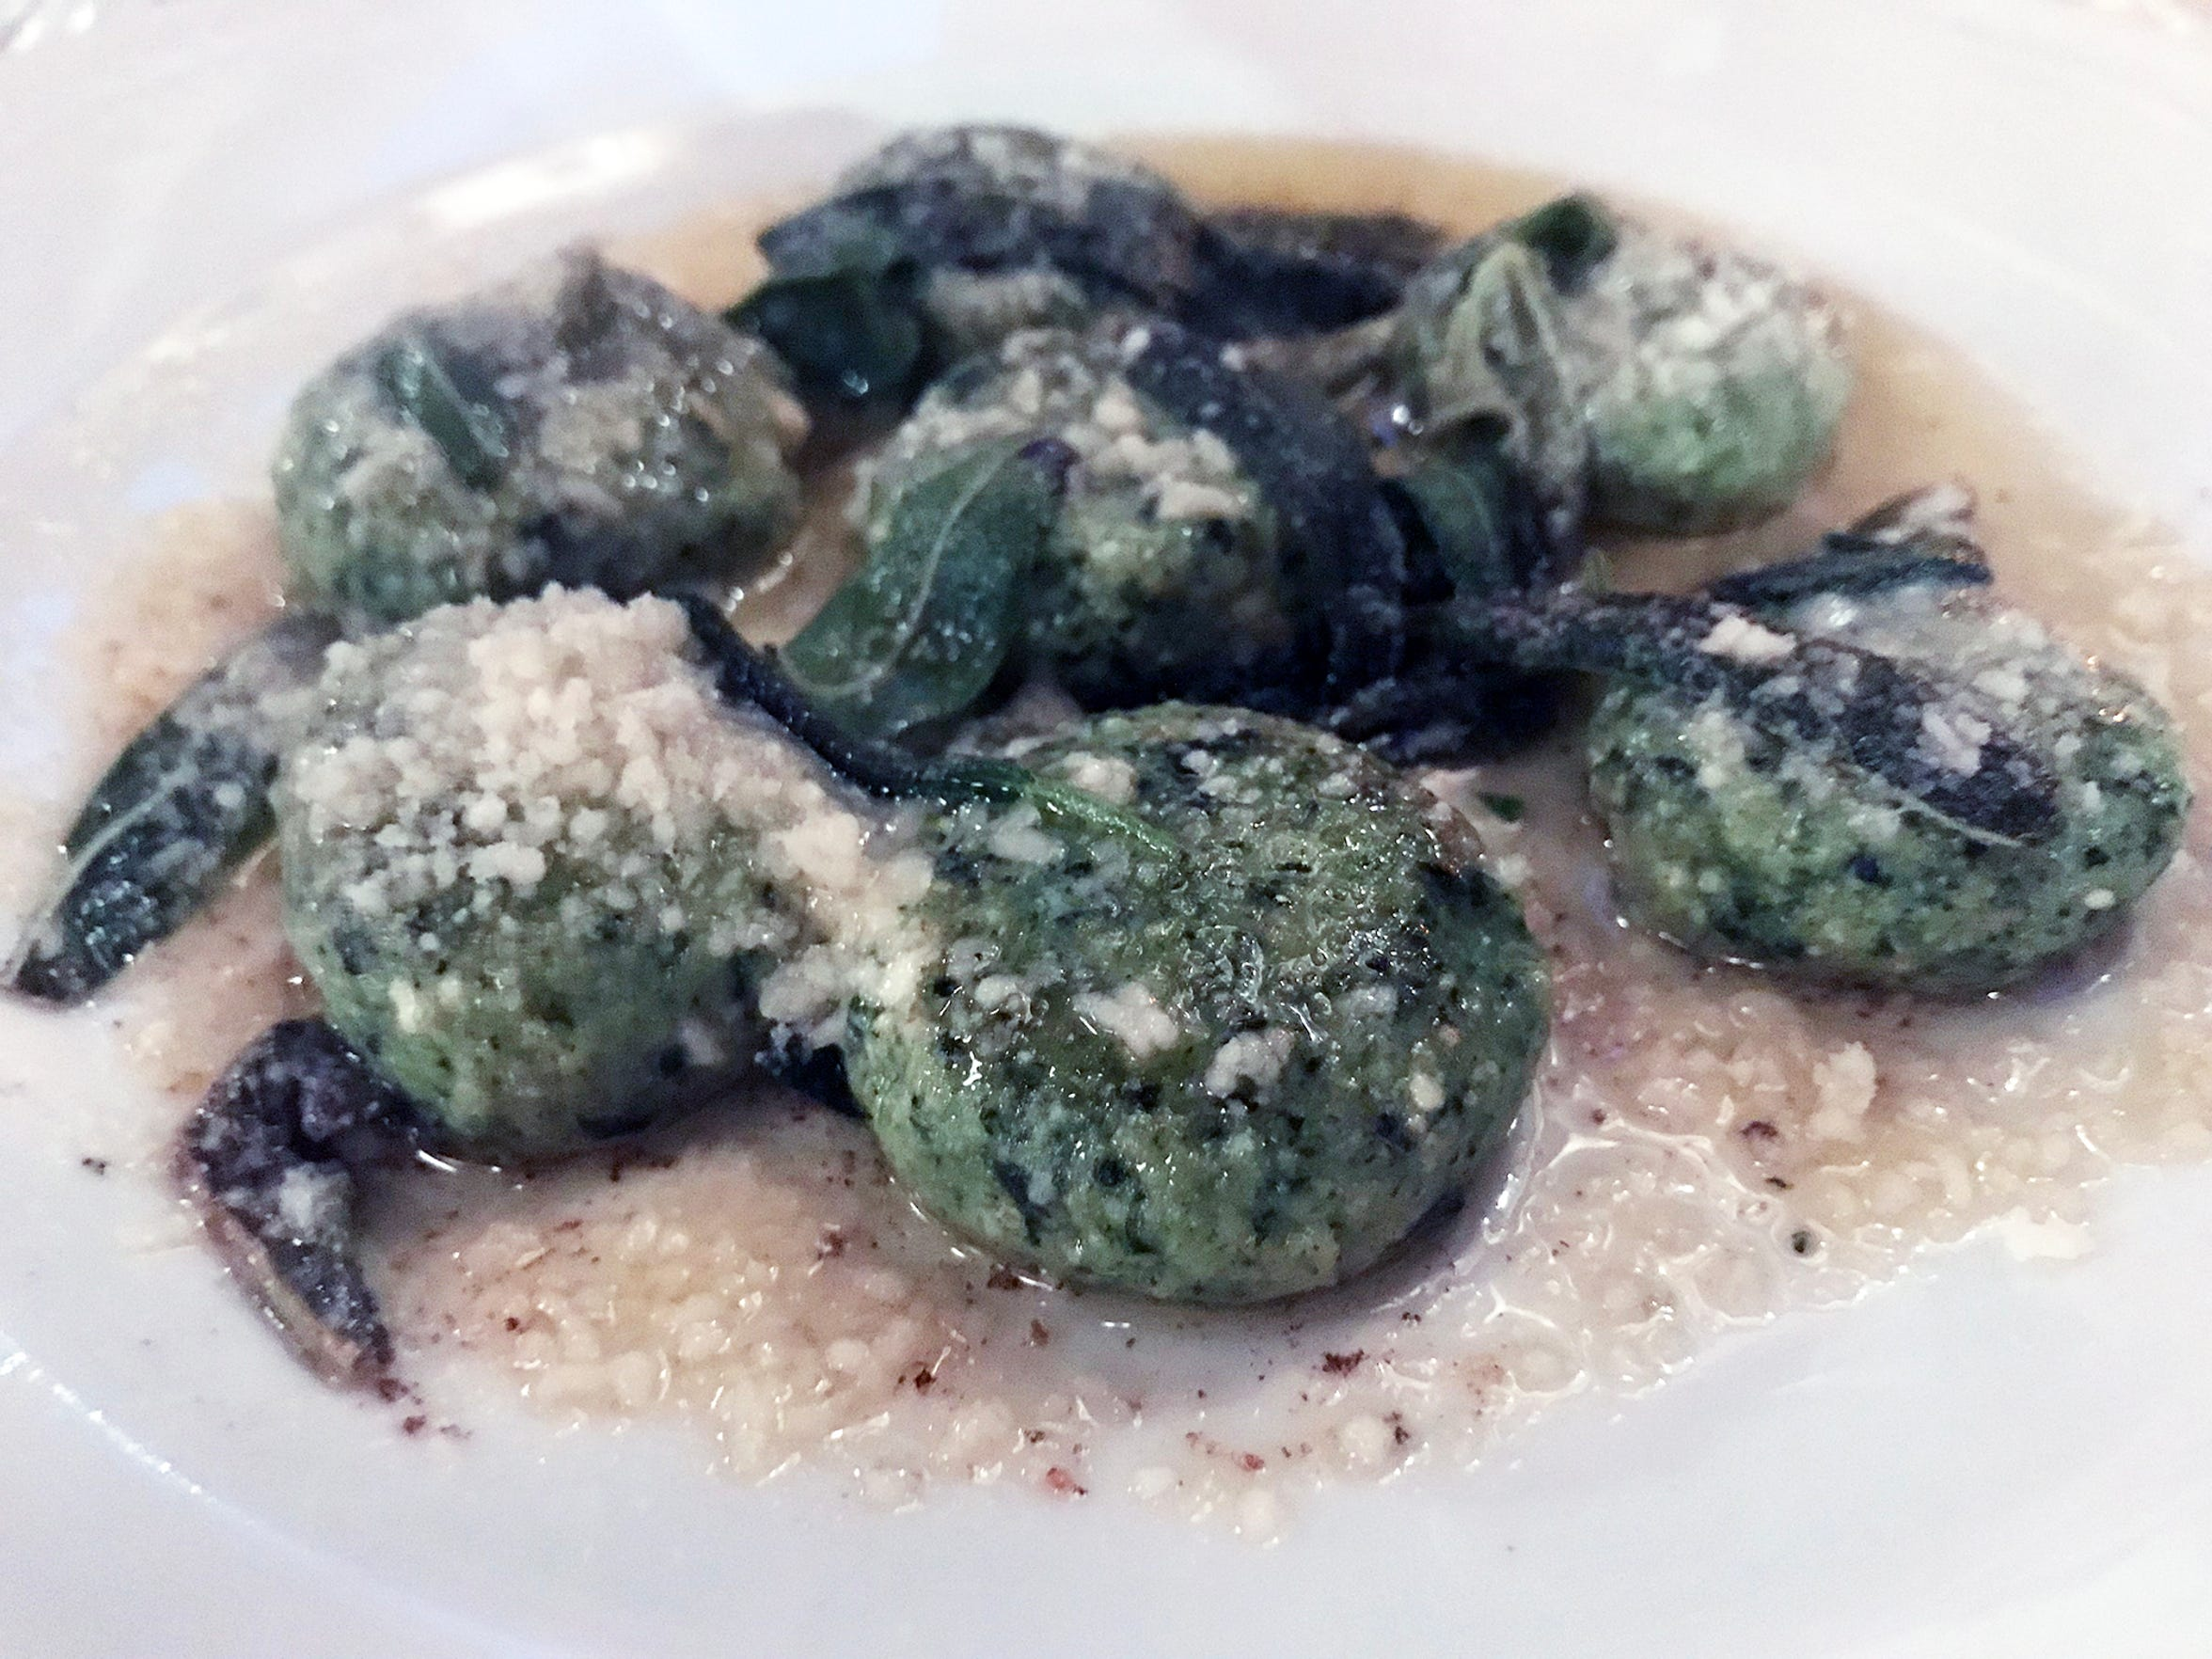 Spinach-ricotta gnudi with sage, butter and cheese was among new dishes at Ristorante Bartolotta, the Italian restaurant at 7616 W. State St., Wauwatosa. The restaurant, which turned 25 this year, refreshed its menu and interior to mark the milestone.